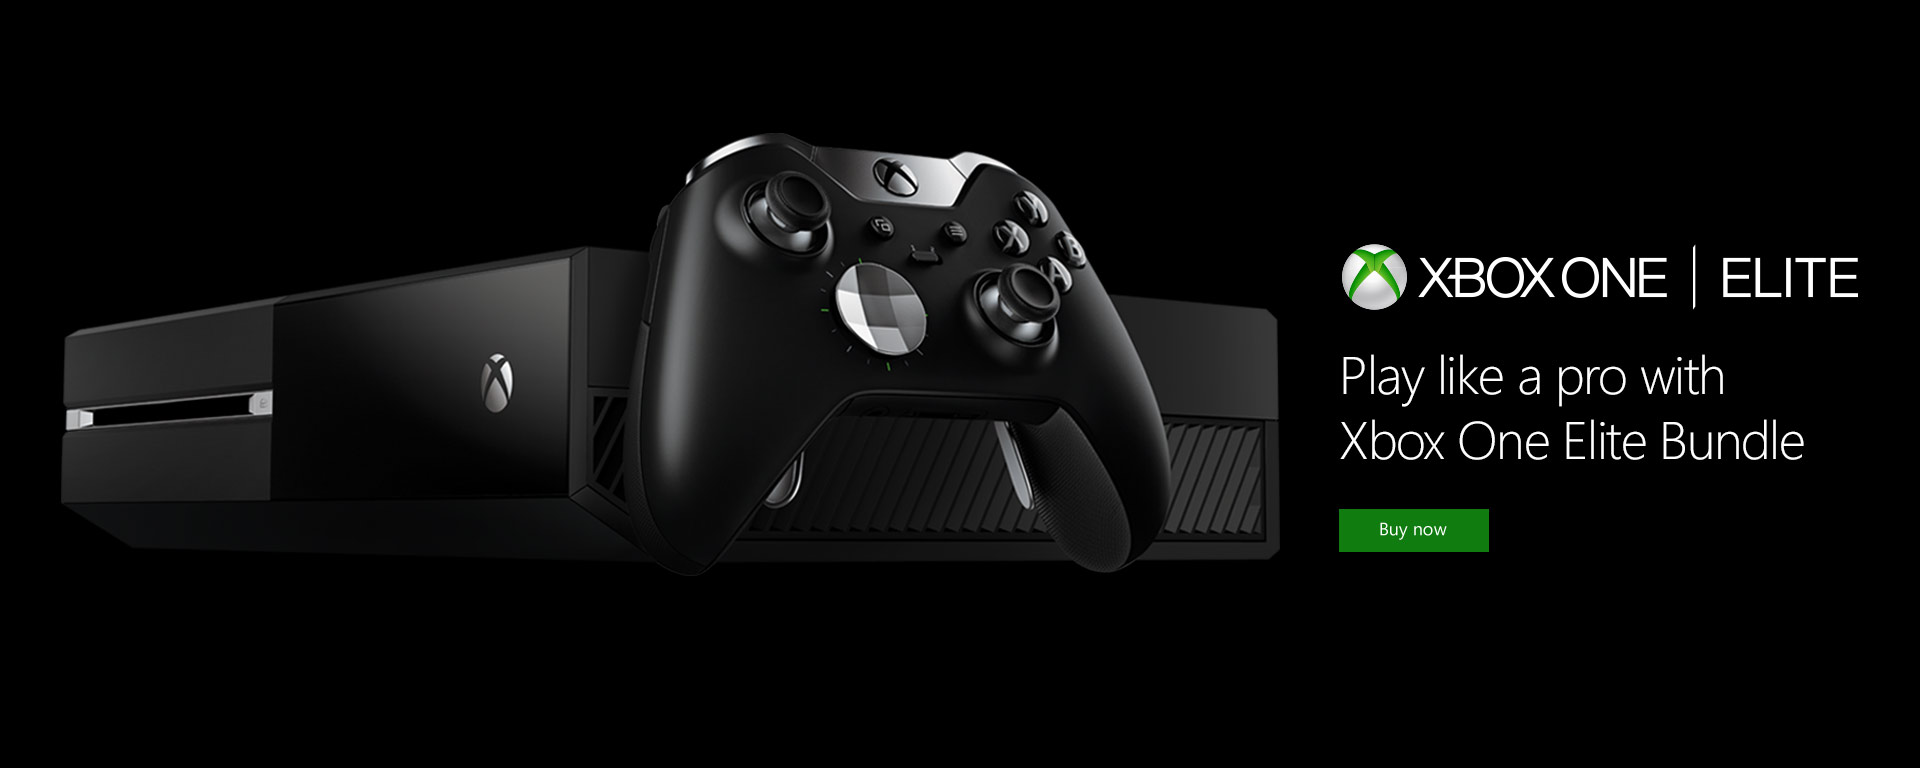 Xbox One Elite Bundle